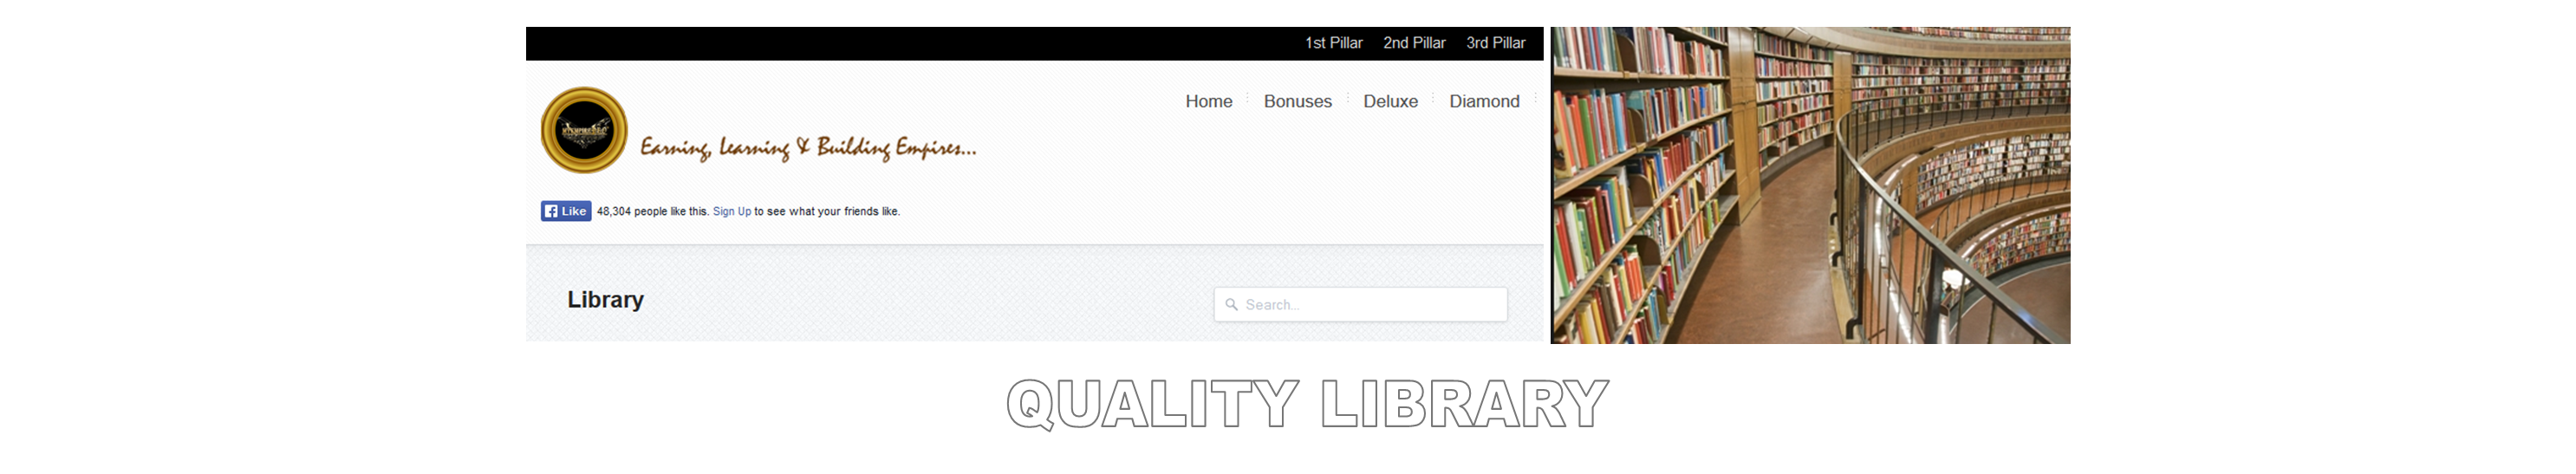 QUALITY-LIBRARY